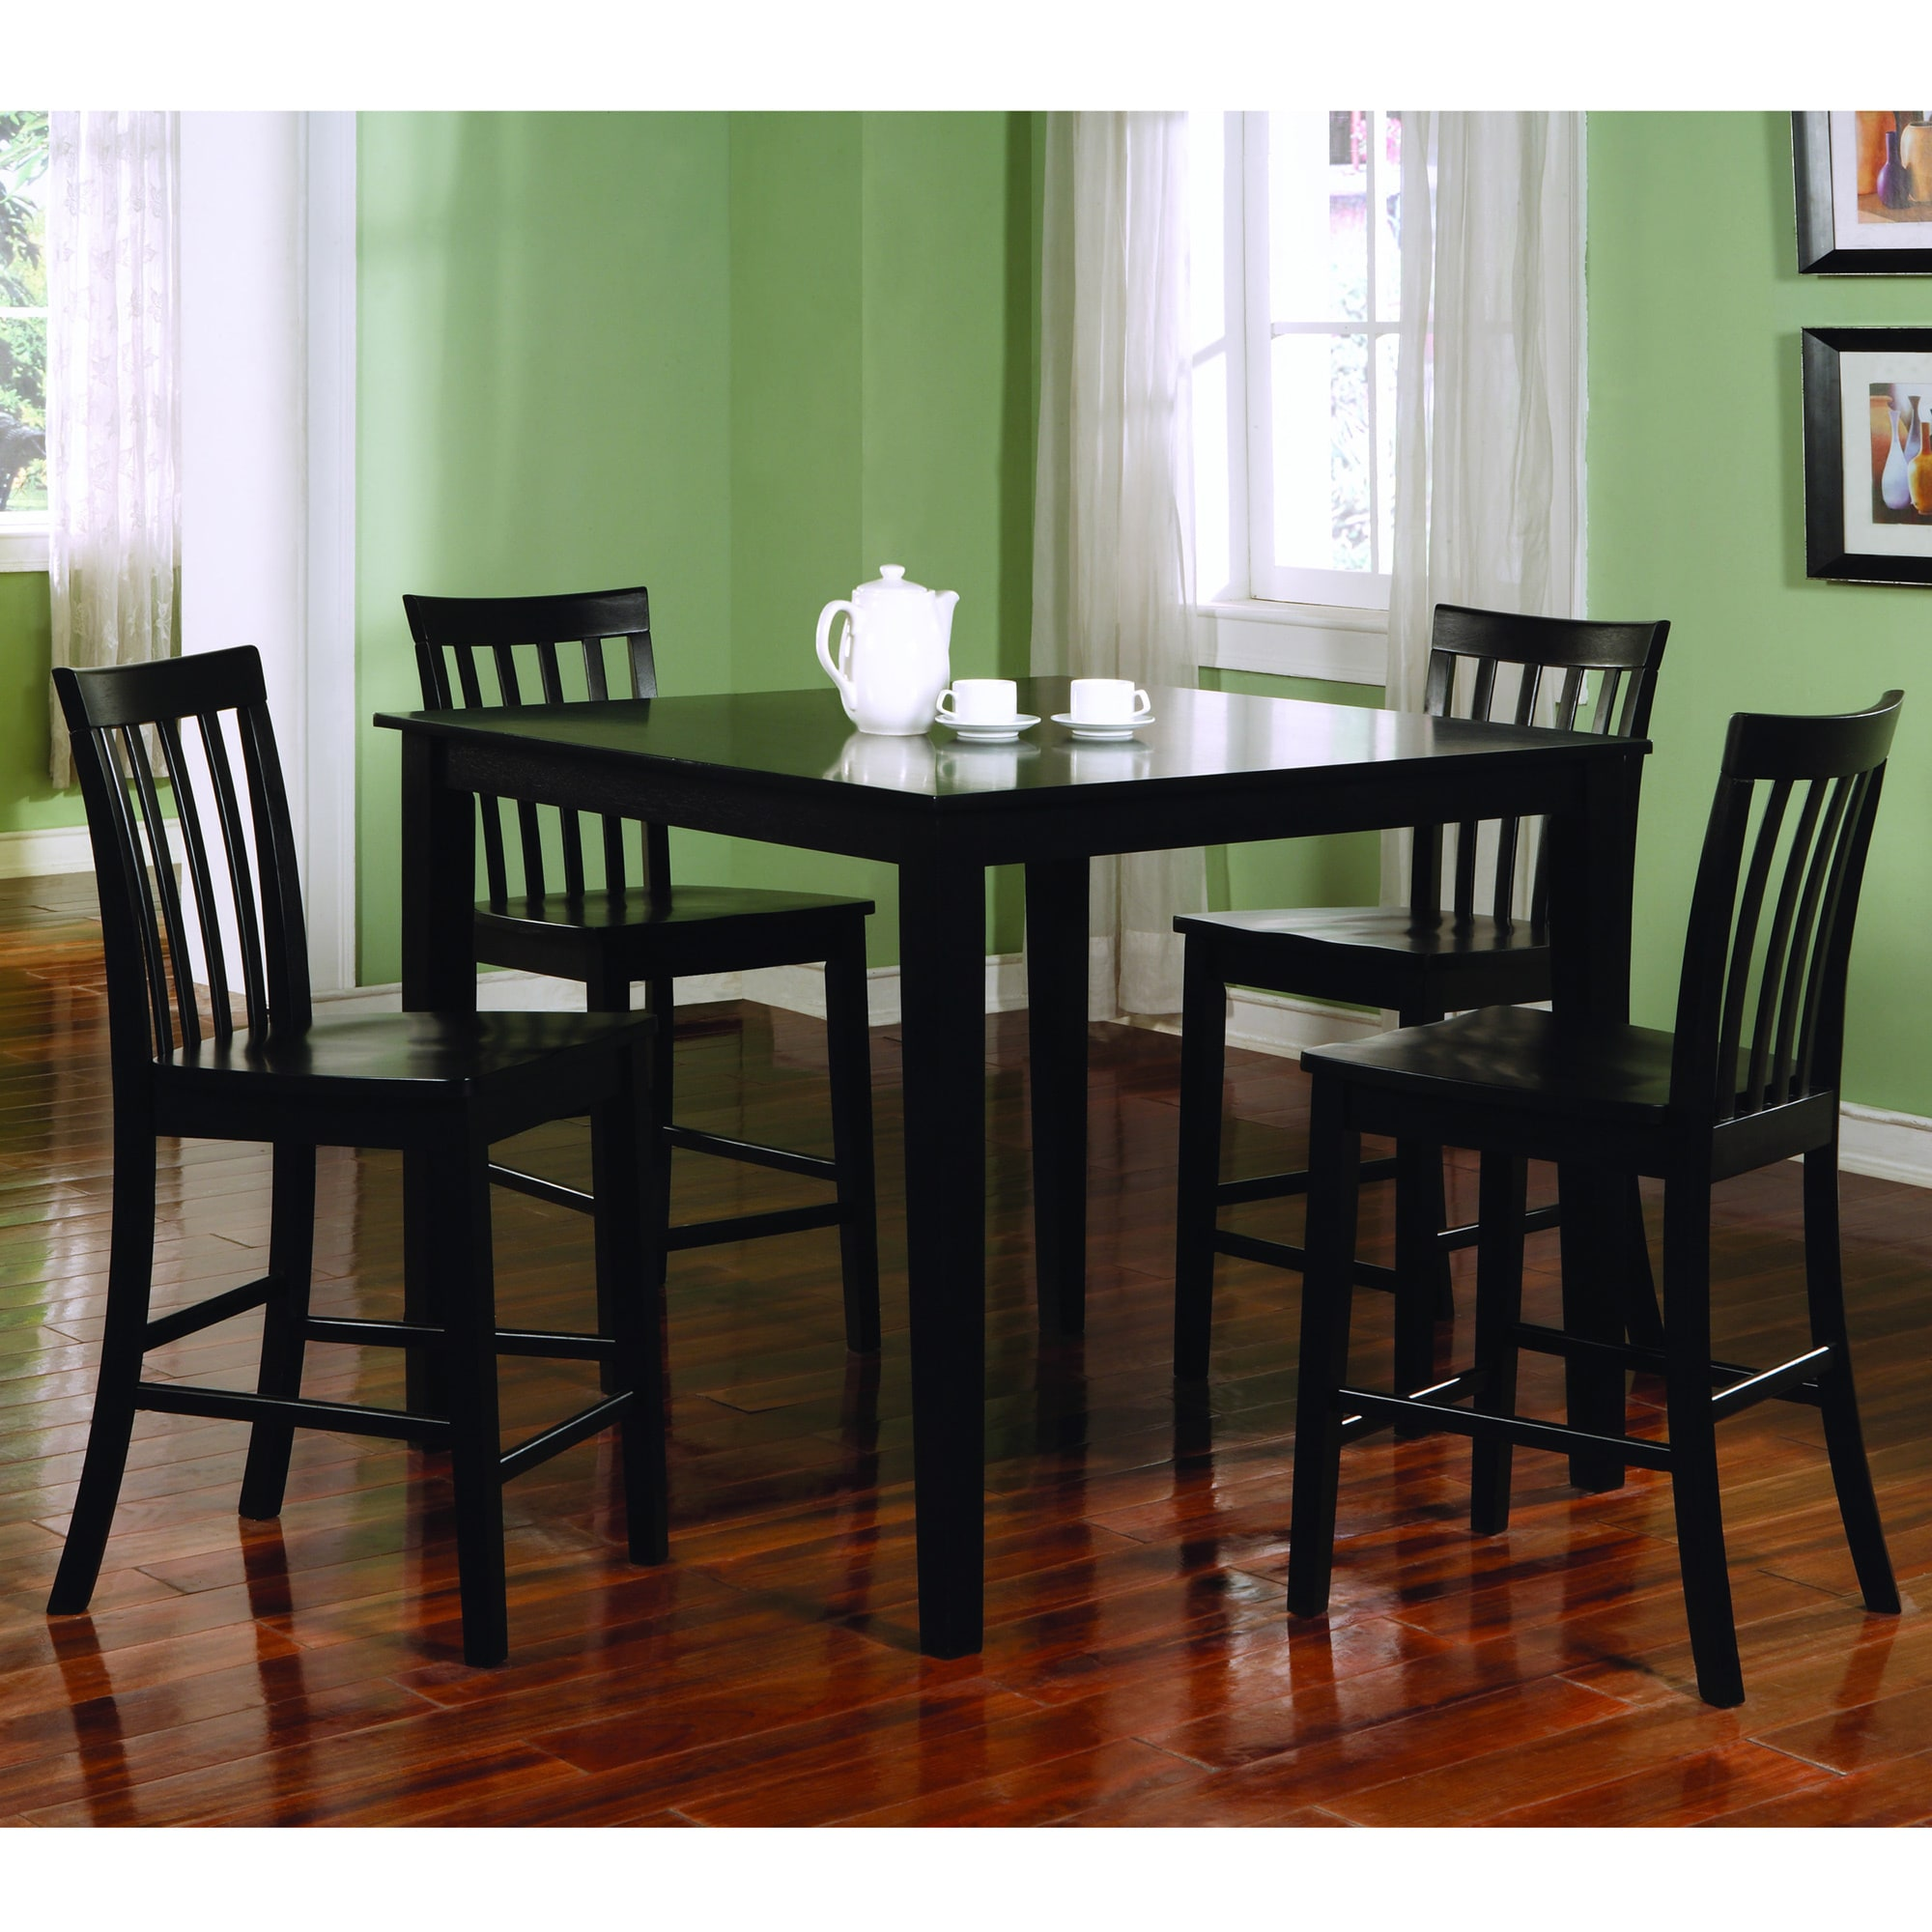 Coaster Furniture Ashland Black Counter Height 5-piece Di...